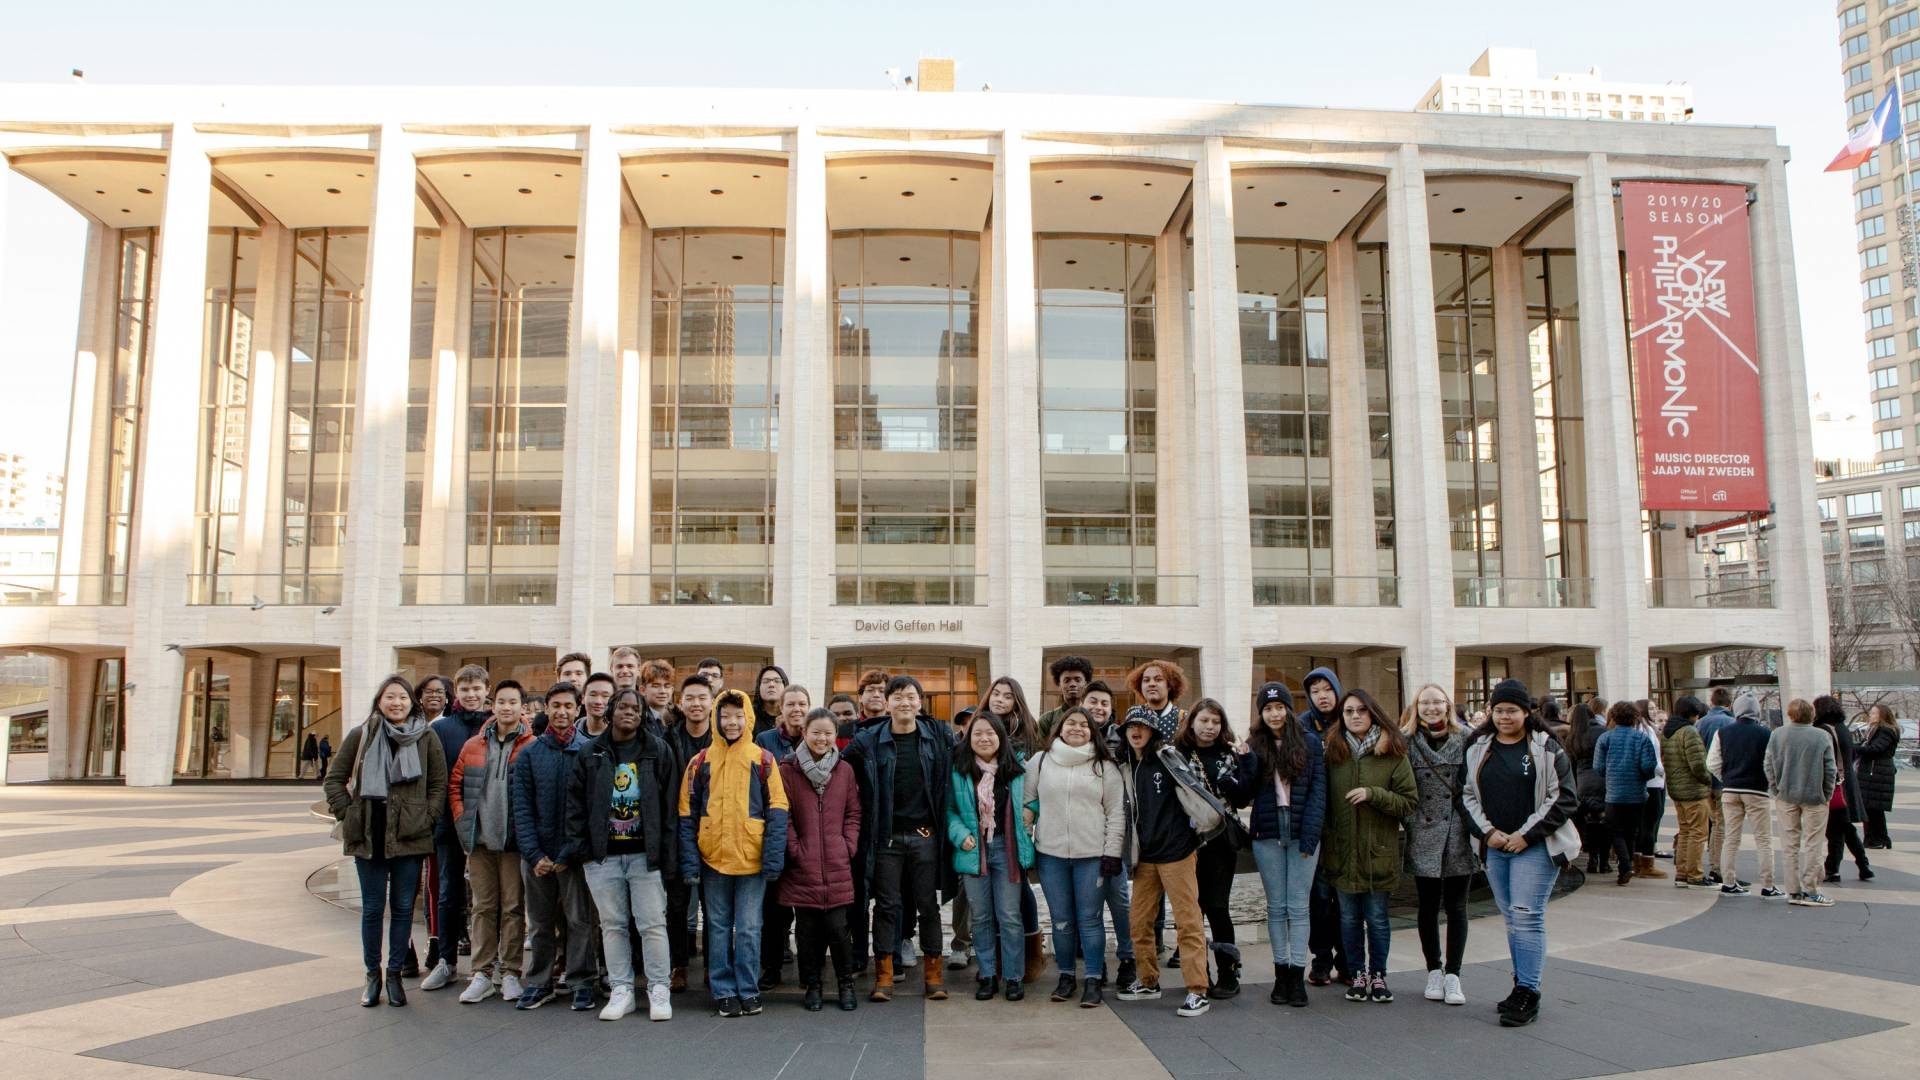 Trenton Arts Program participants pose in front of David Geffen Center in New York City